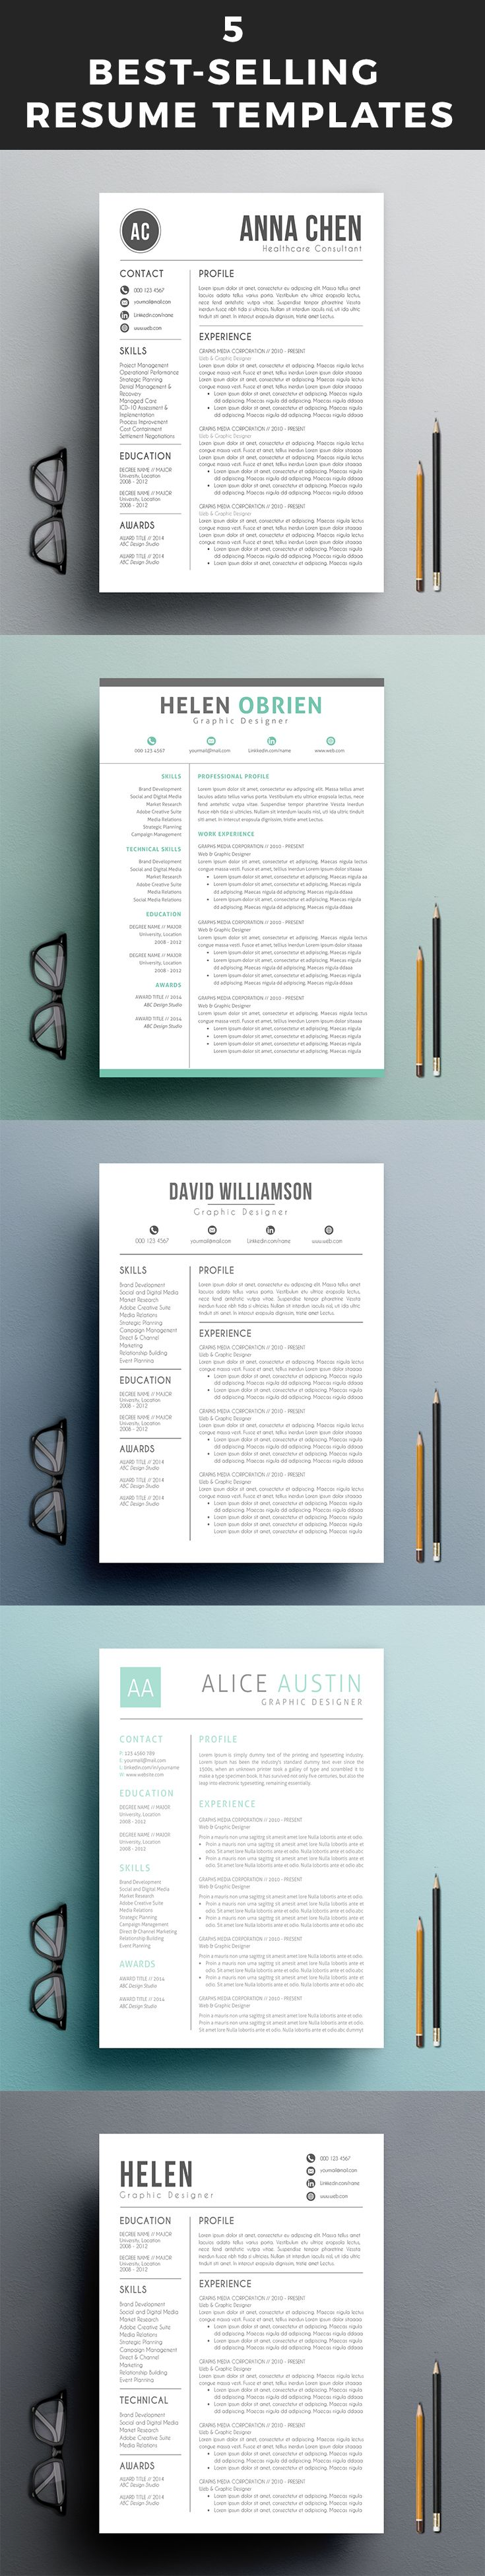 Charming 1 Year Experience Resume Format For Java Tiny 11x17 Poster Template Square 2 Column Css Template 20 Dollar Bill Template Old 2013 Powerpoint Templates Green2014 Calendar Template Australia 25  Best Ideas About Best Resume Template On Pinterest | Best Cv ..